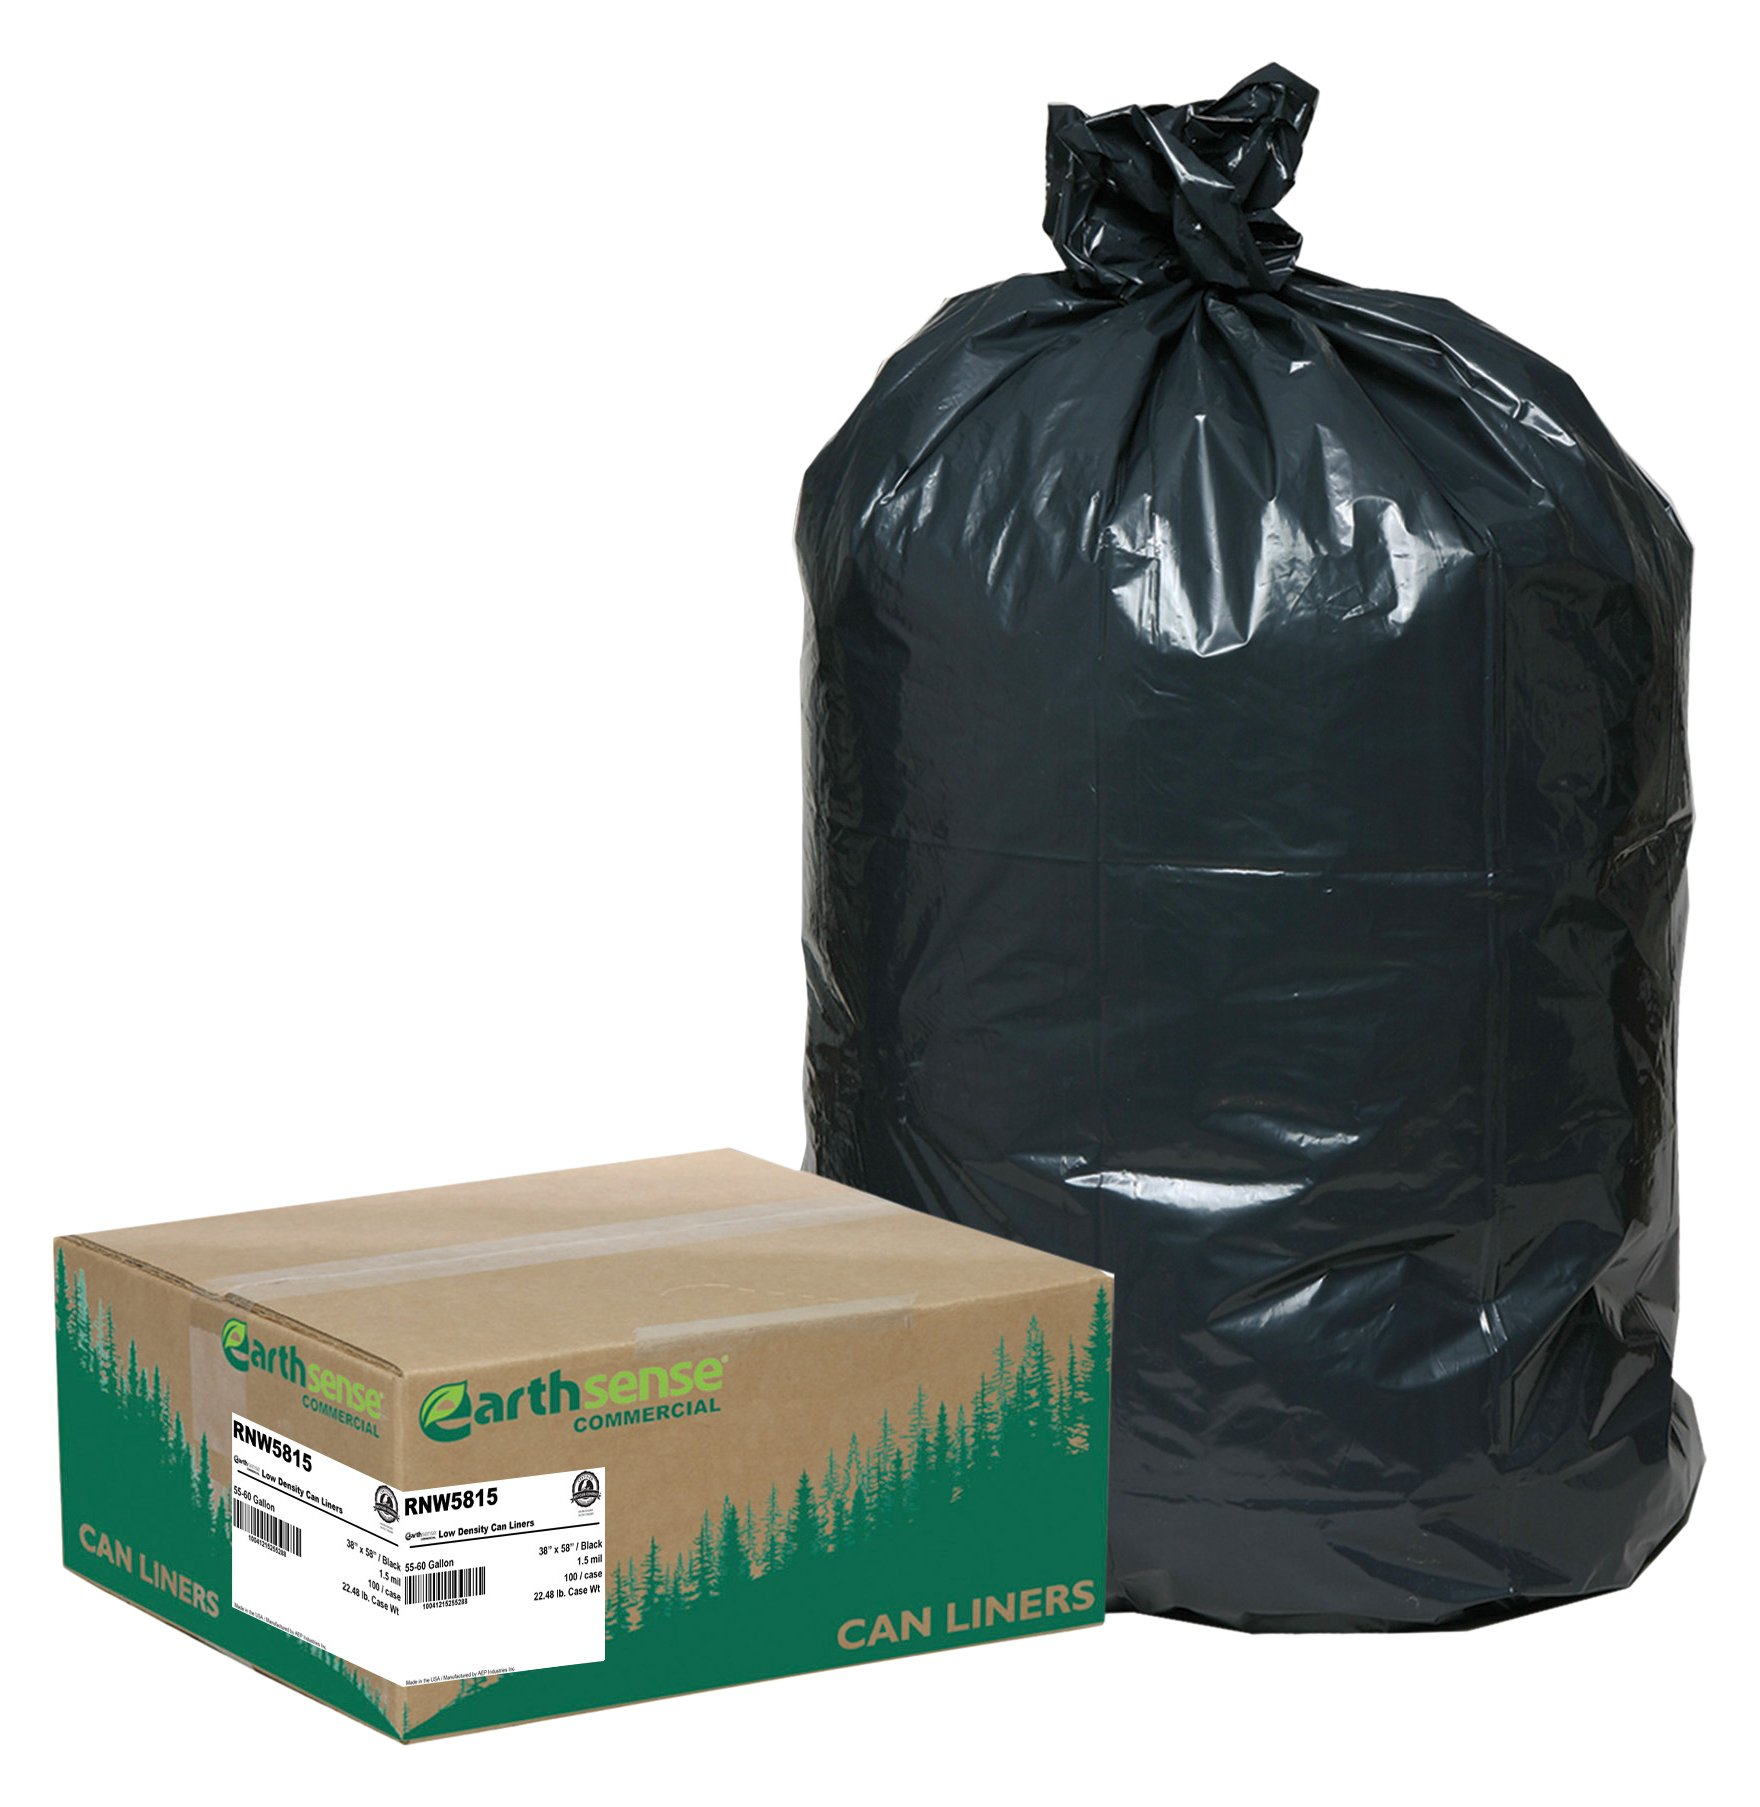 Earthsense Commercial RNW5815 Can Liner, 38 x 58, 55-60 gal, 1.5 mil, Polyethylene, Black (Pack of 100) by Earthsense Commercial (Image #1)